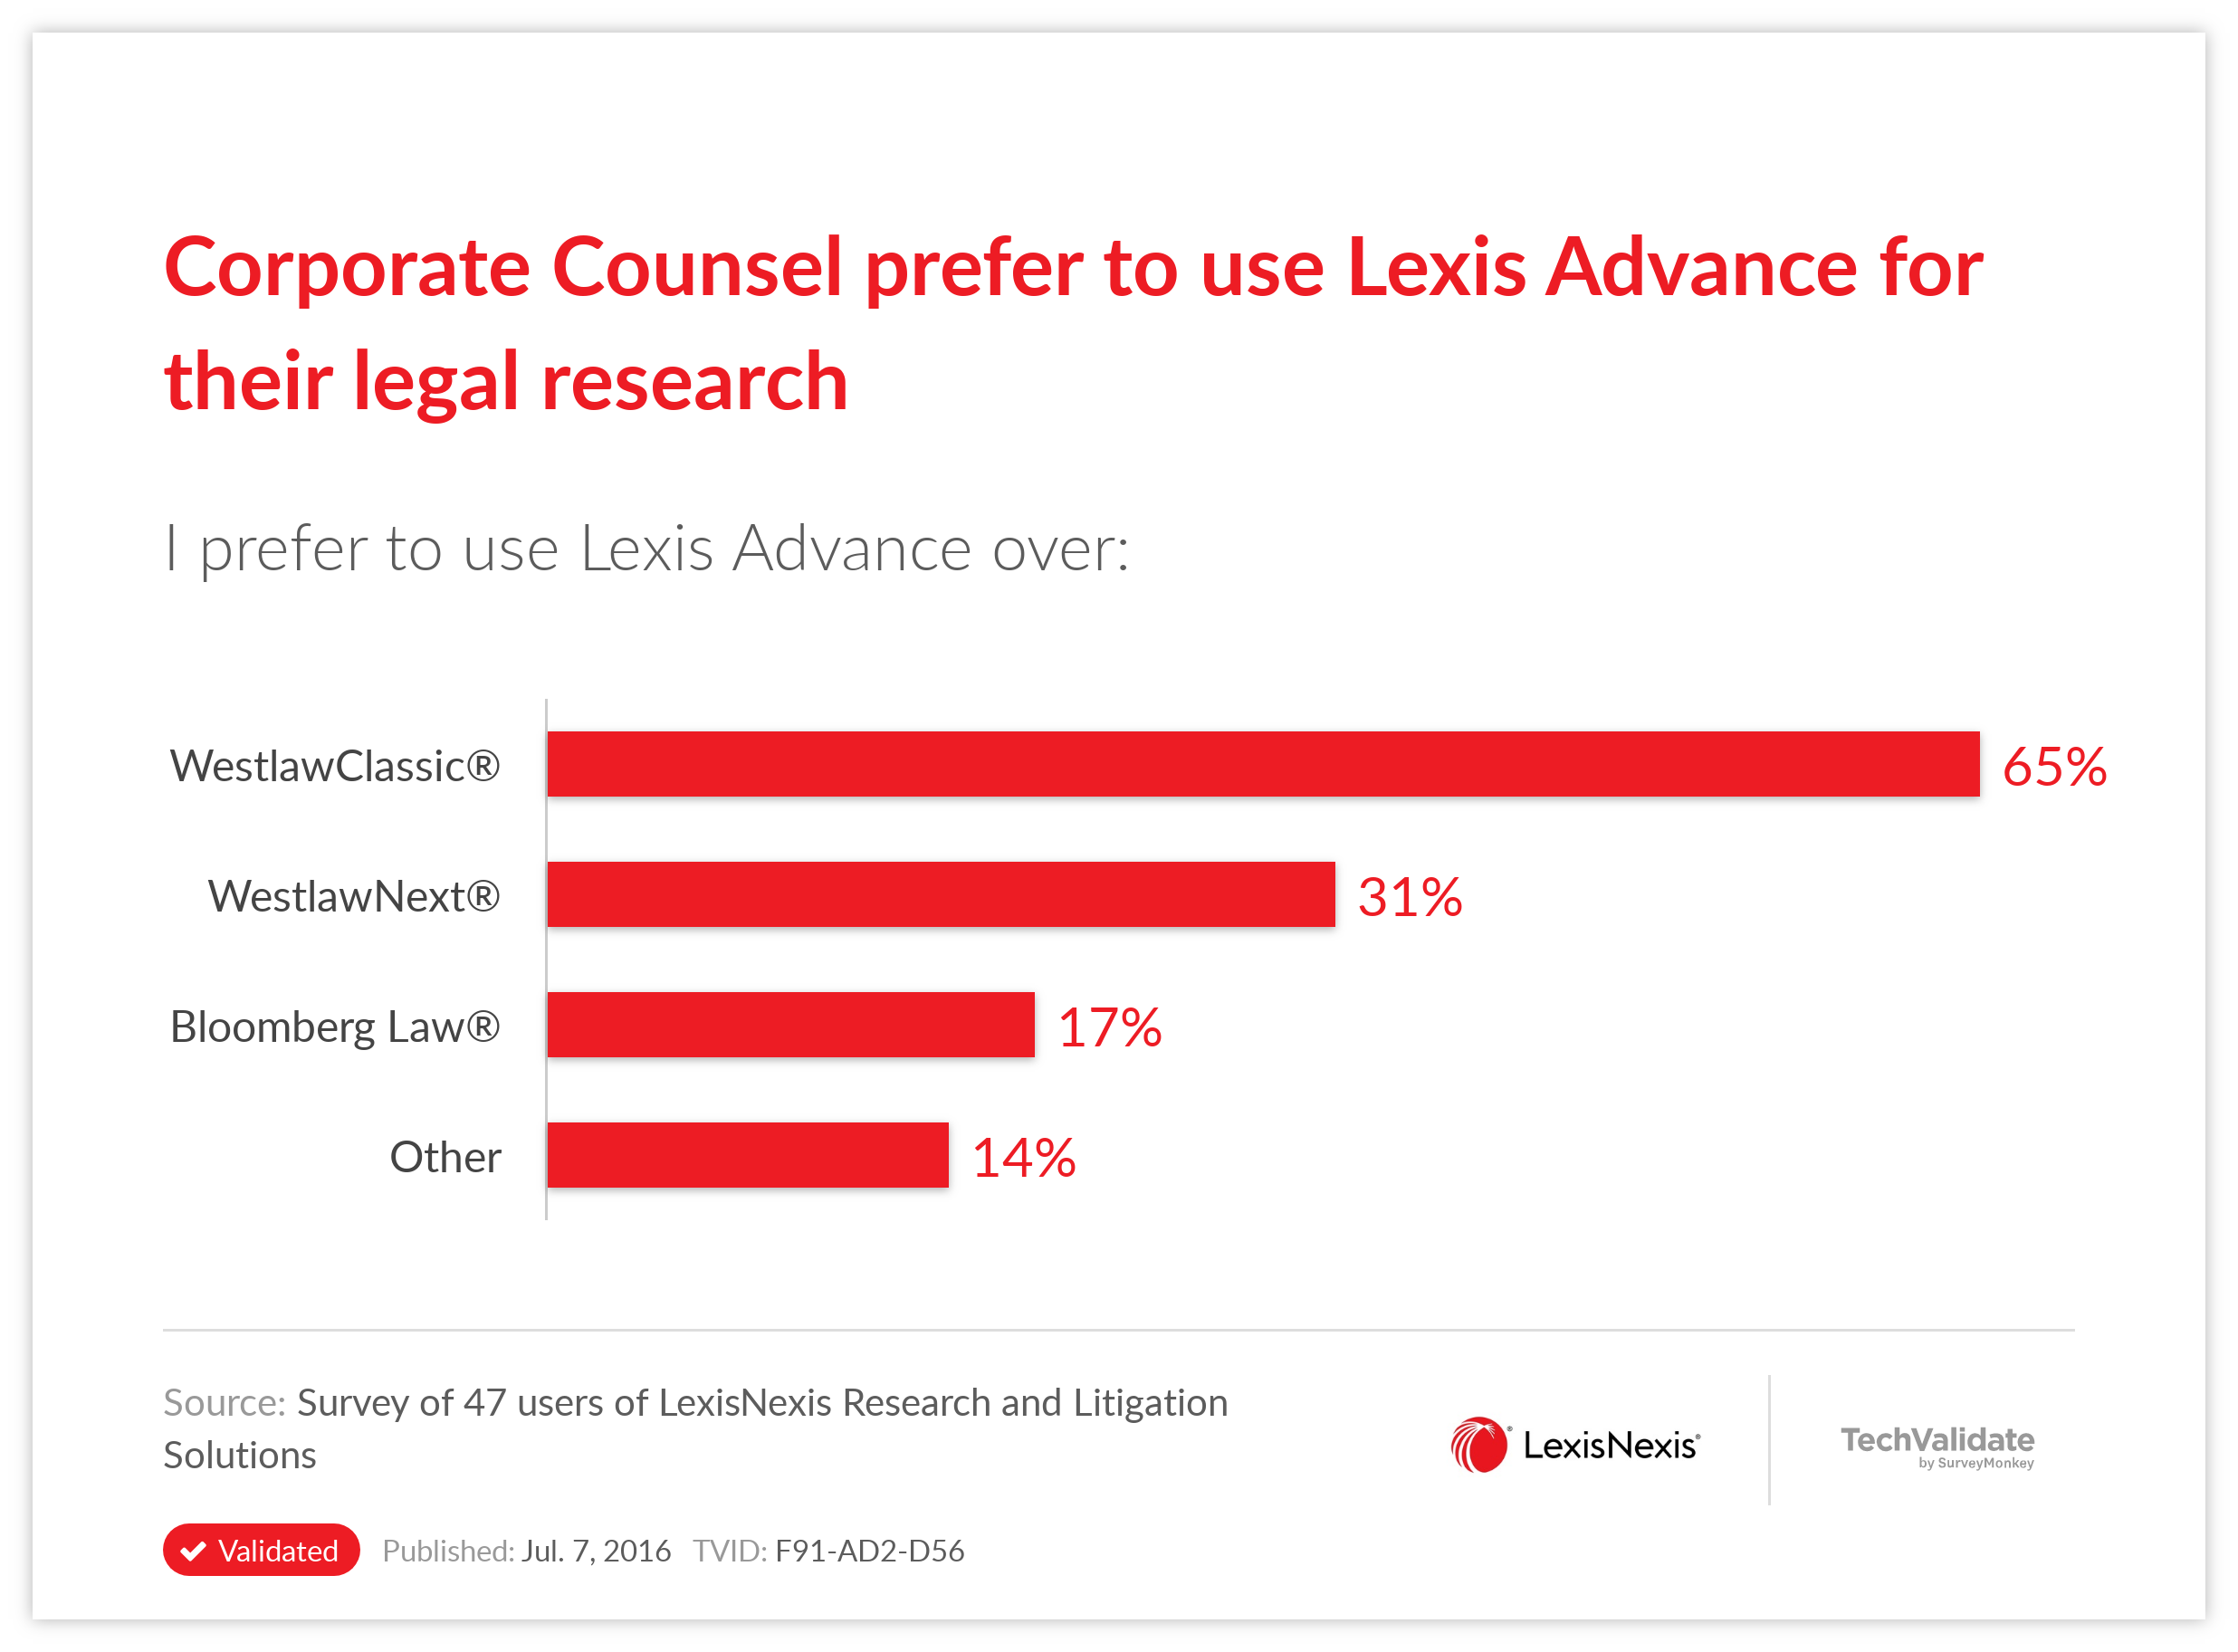 Corporate Counsel prefer to use Lexis Advance for their legal research